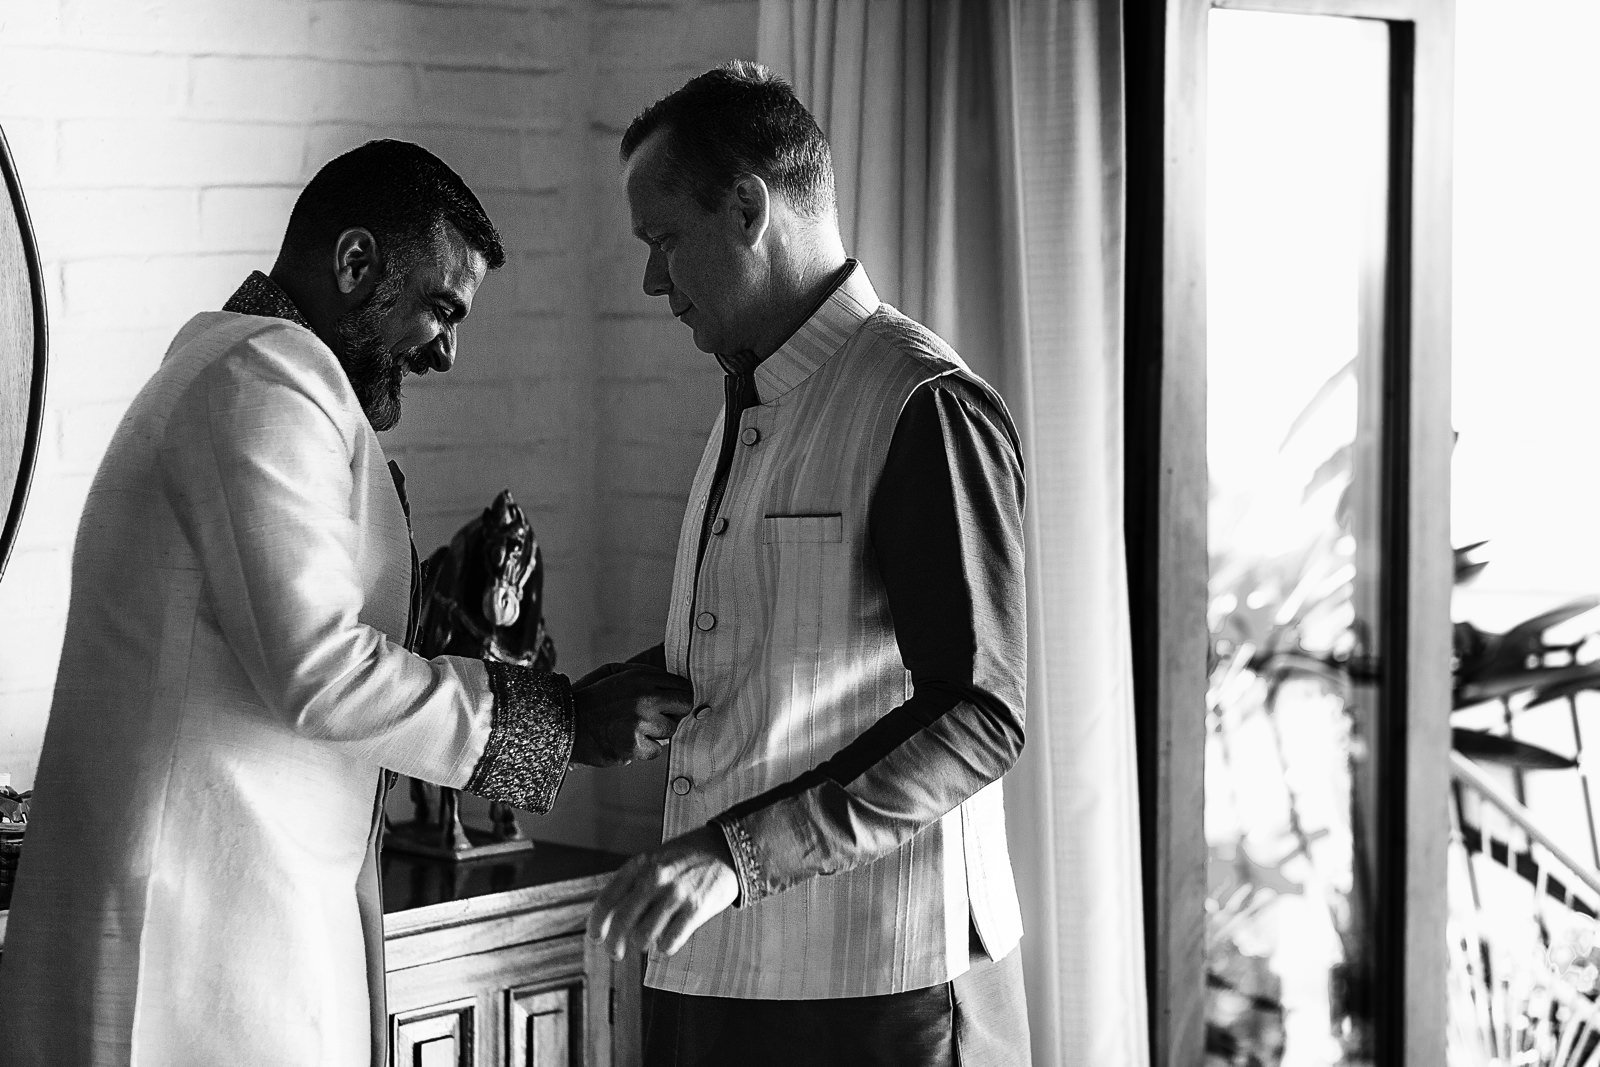 Groom and best man having fun while getting dressed